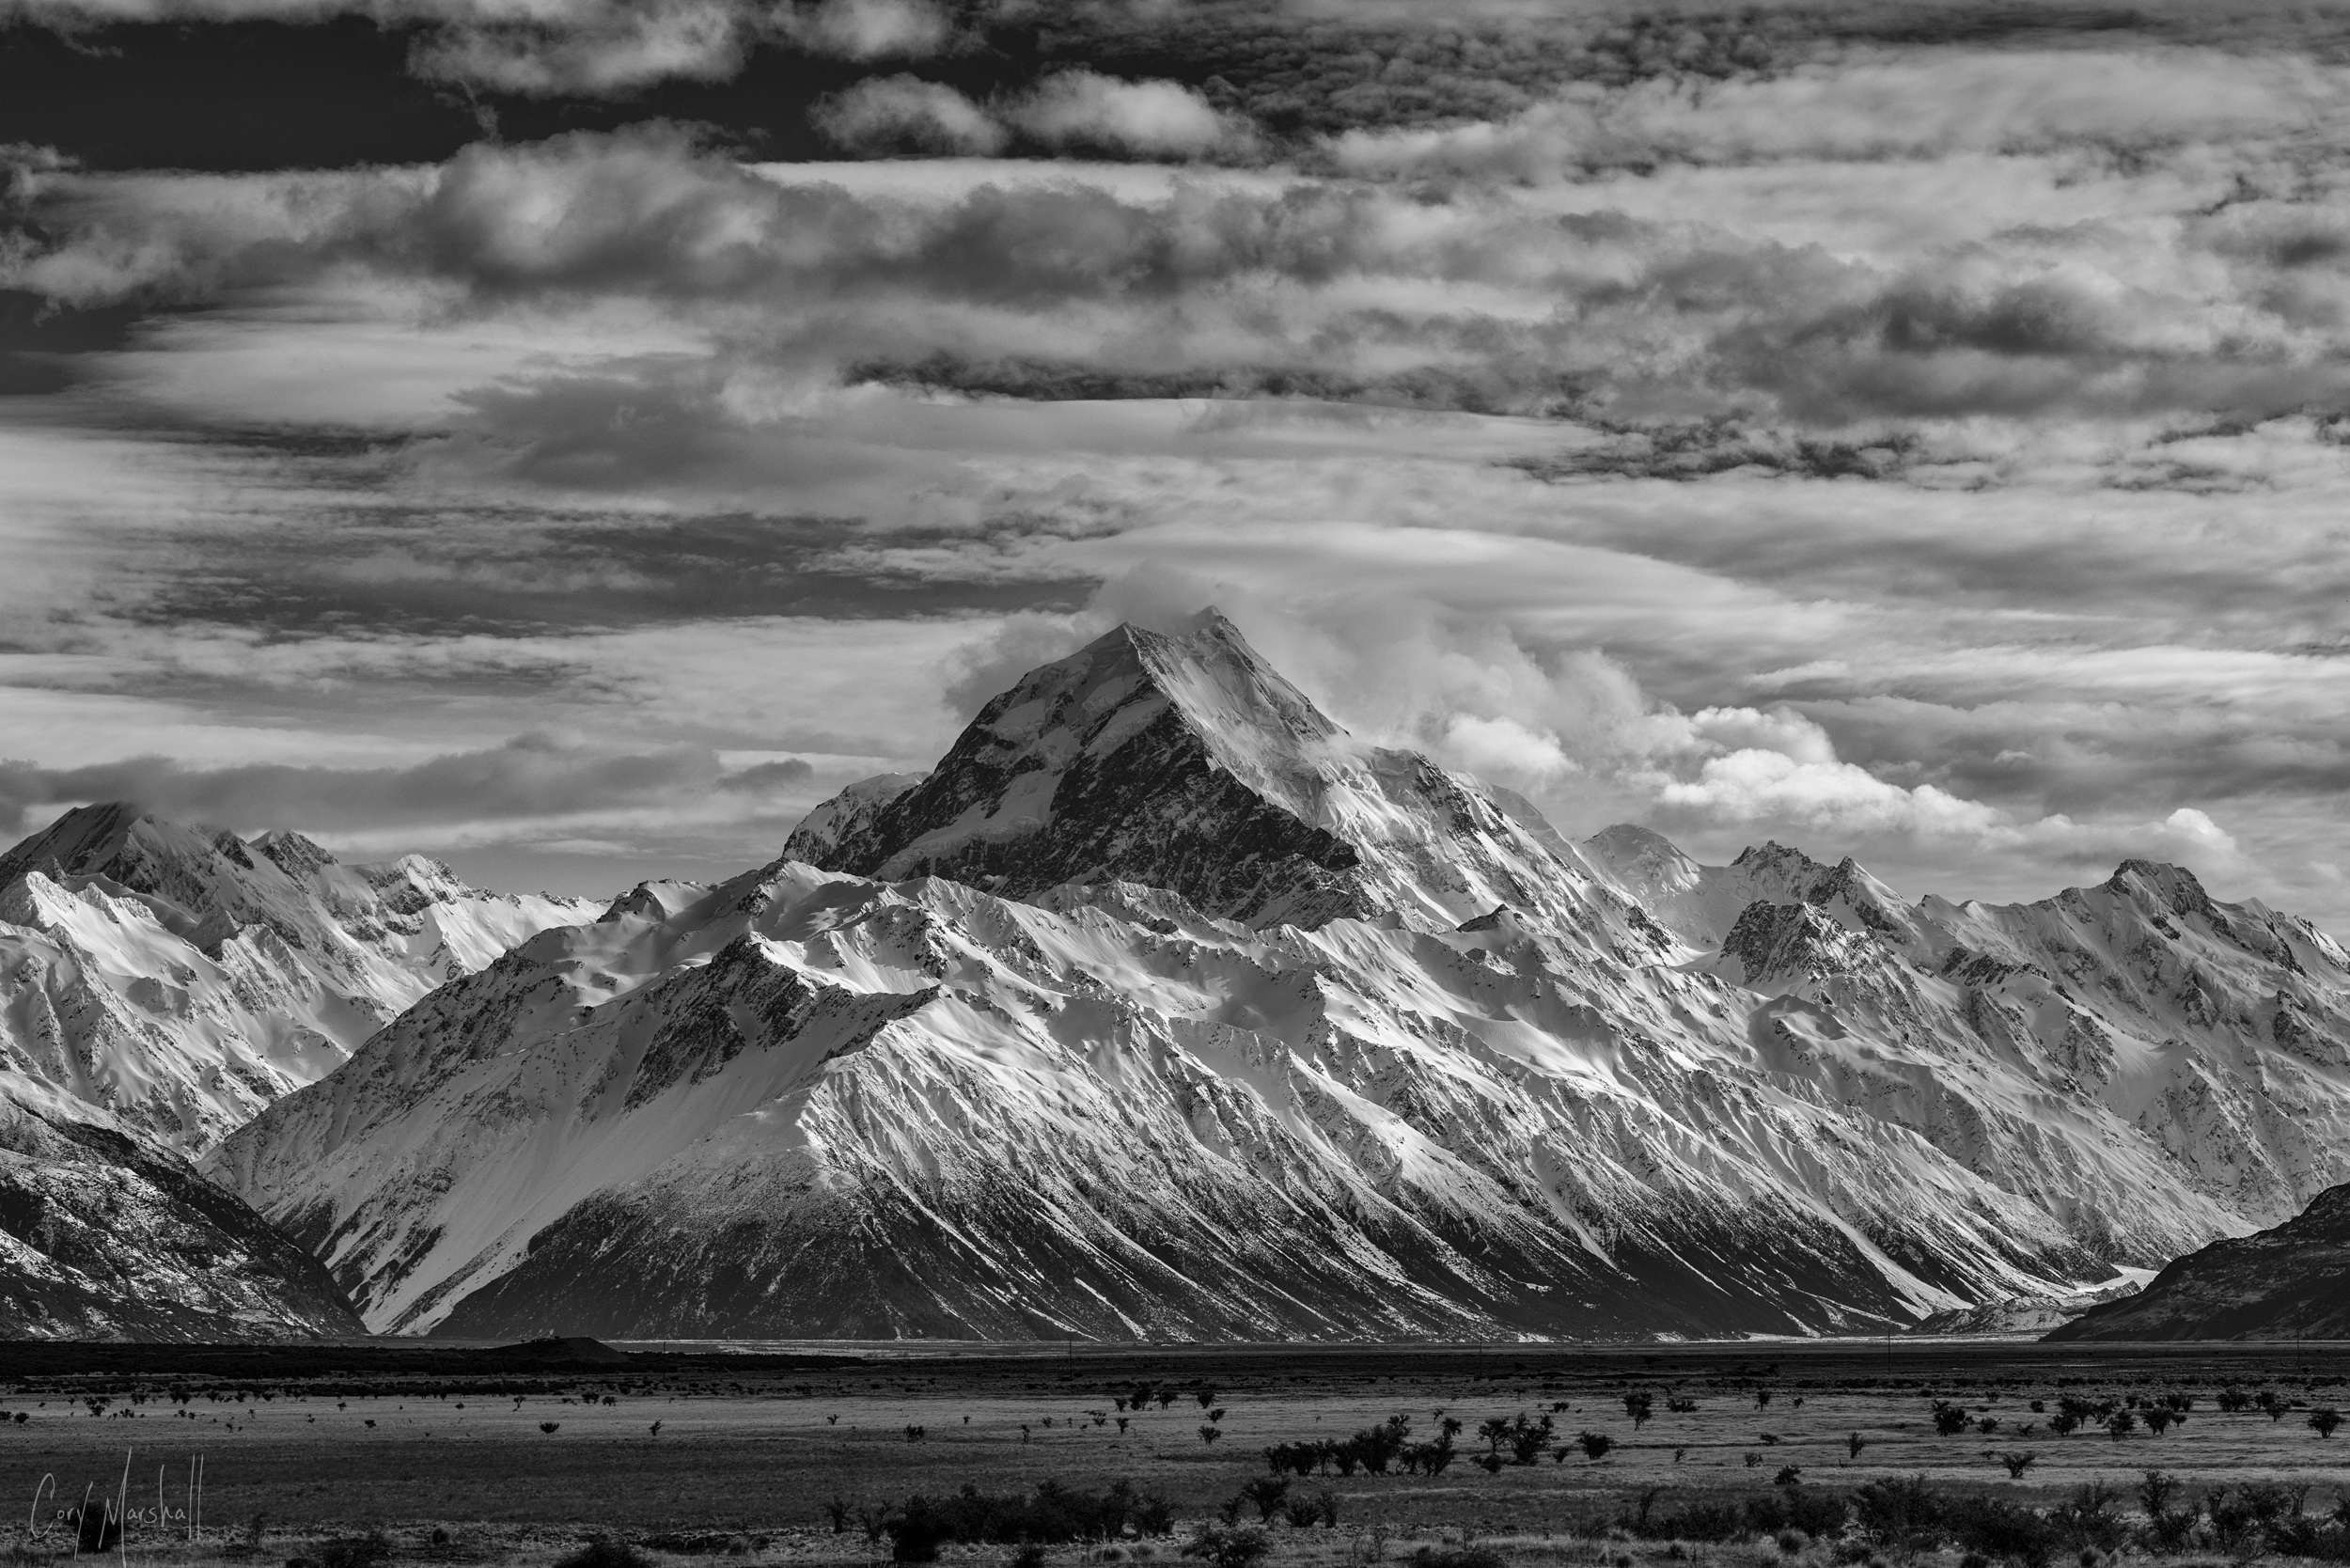 Aoraki / Mount Cook in New Zealand.